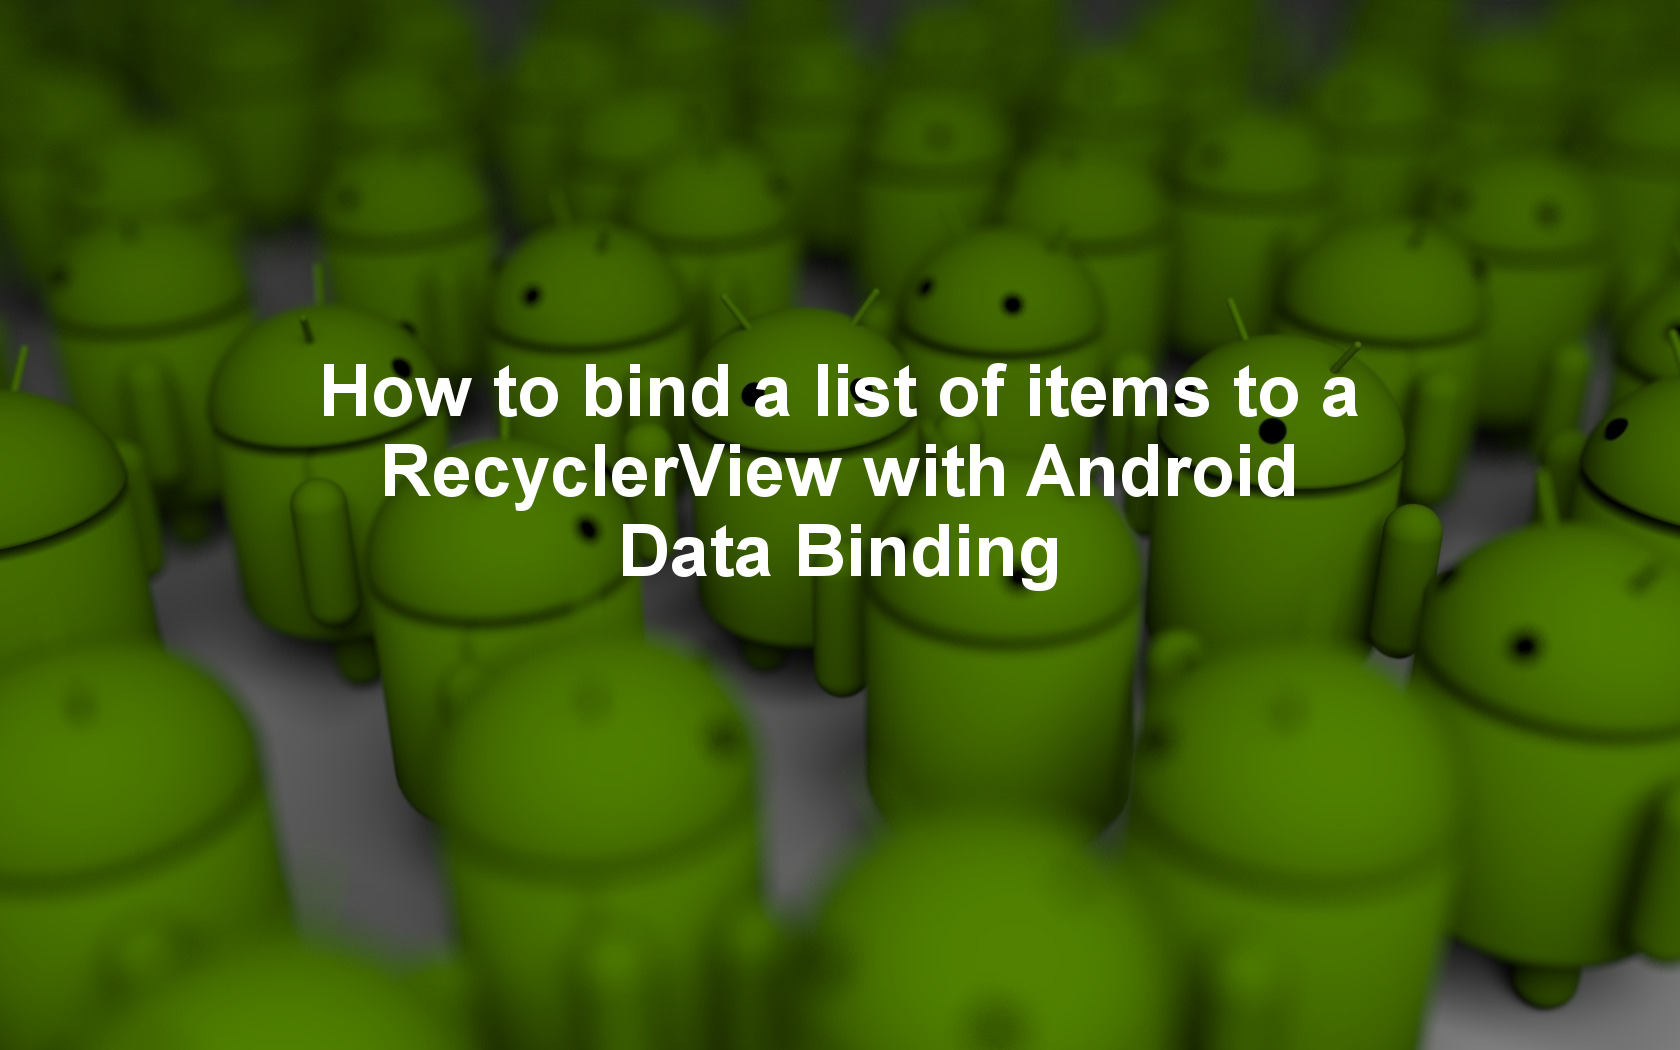 How to bind a list of items to a RecyclerView with Android